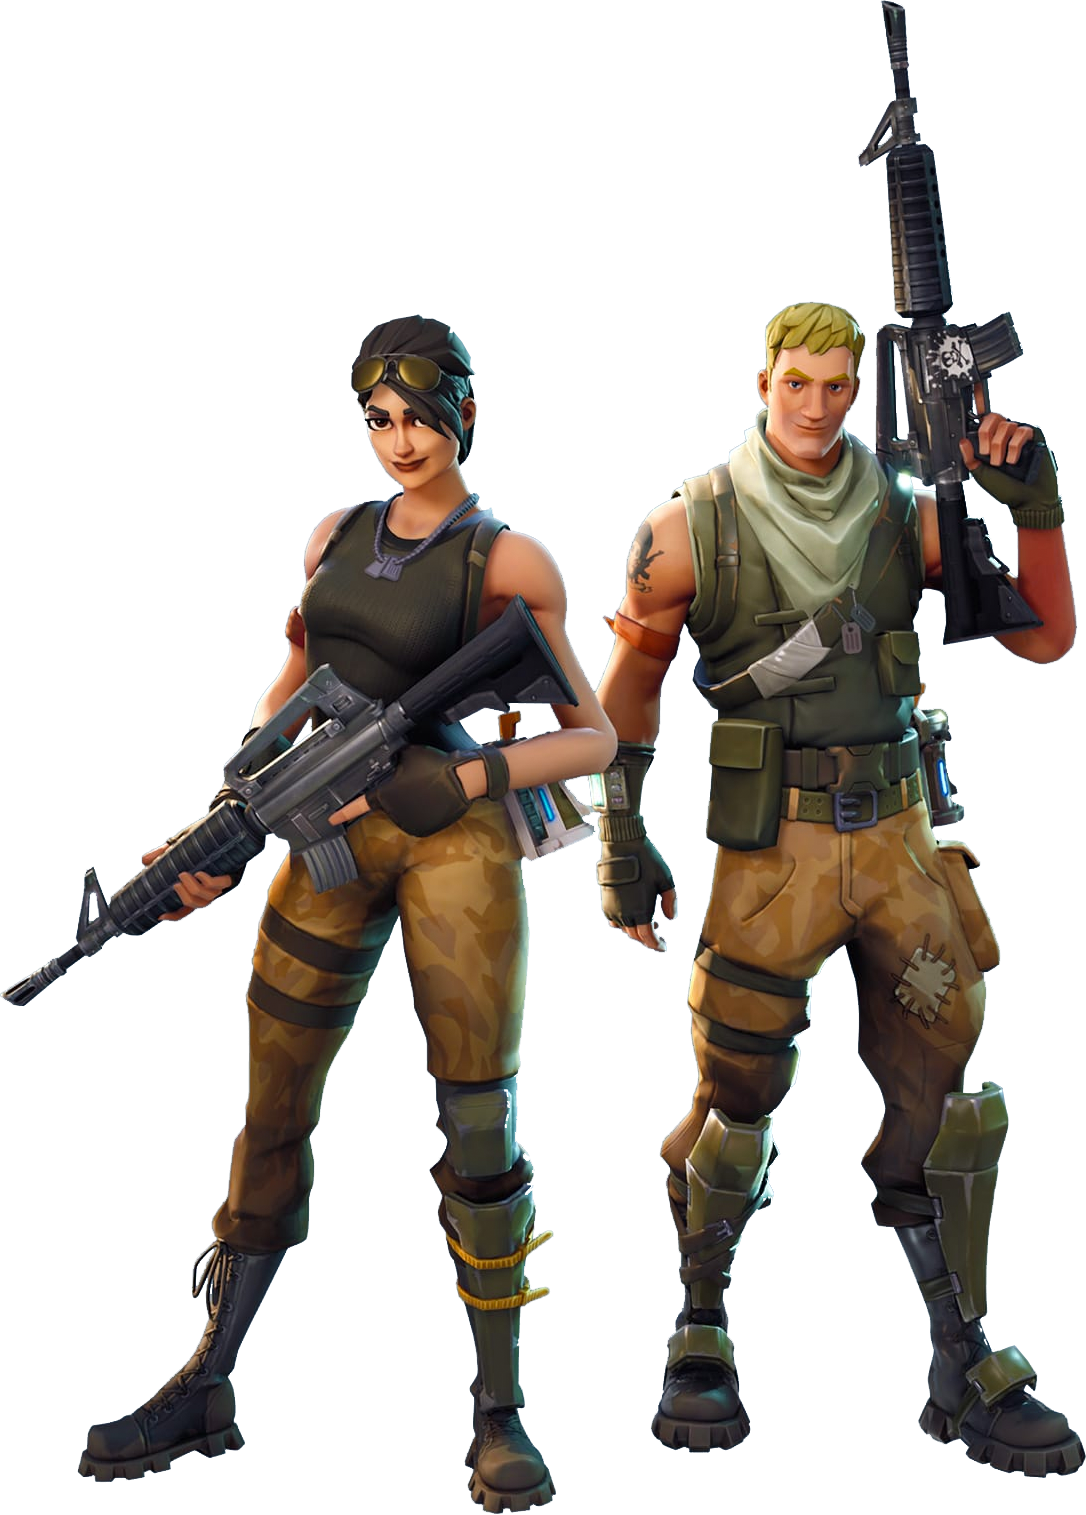 soldier fortnite wiki #20201